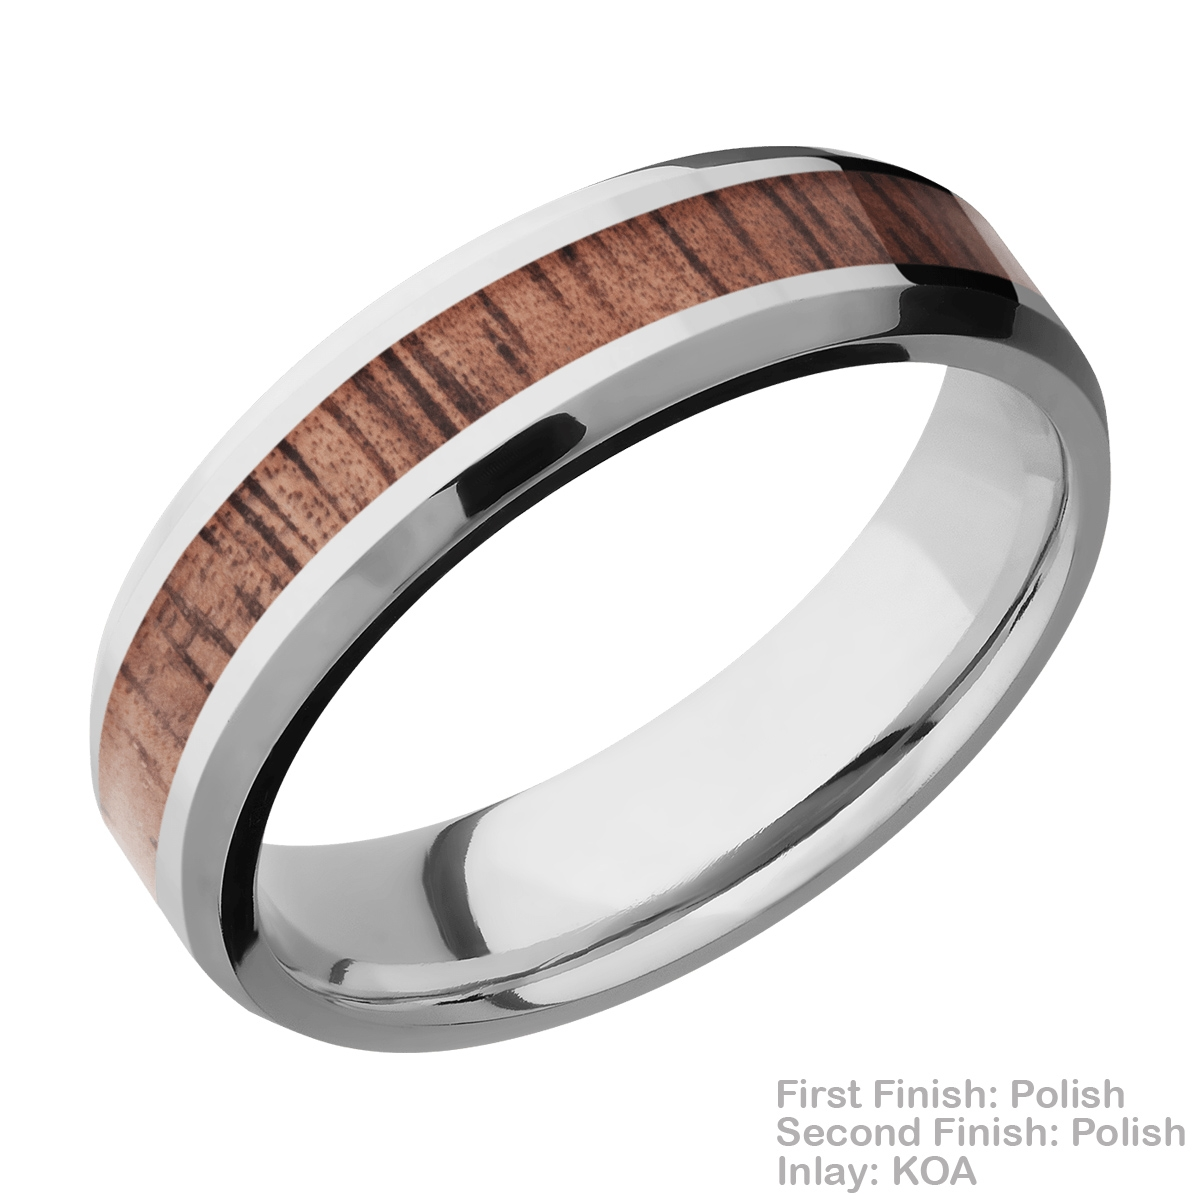 Lashbrook CC6B13(NS)/HARDWOOD Cobalt Chrome Wedding Ring or Band Alternative View 14